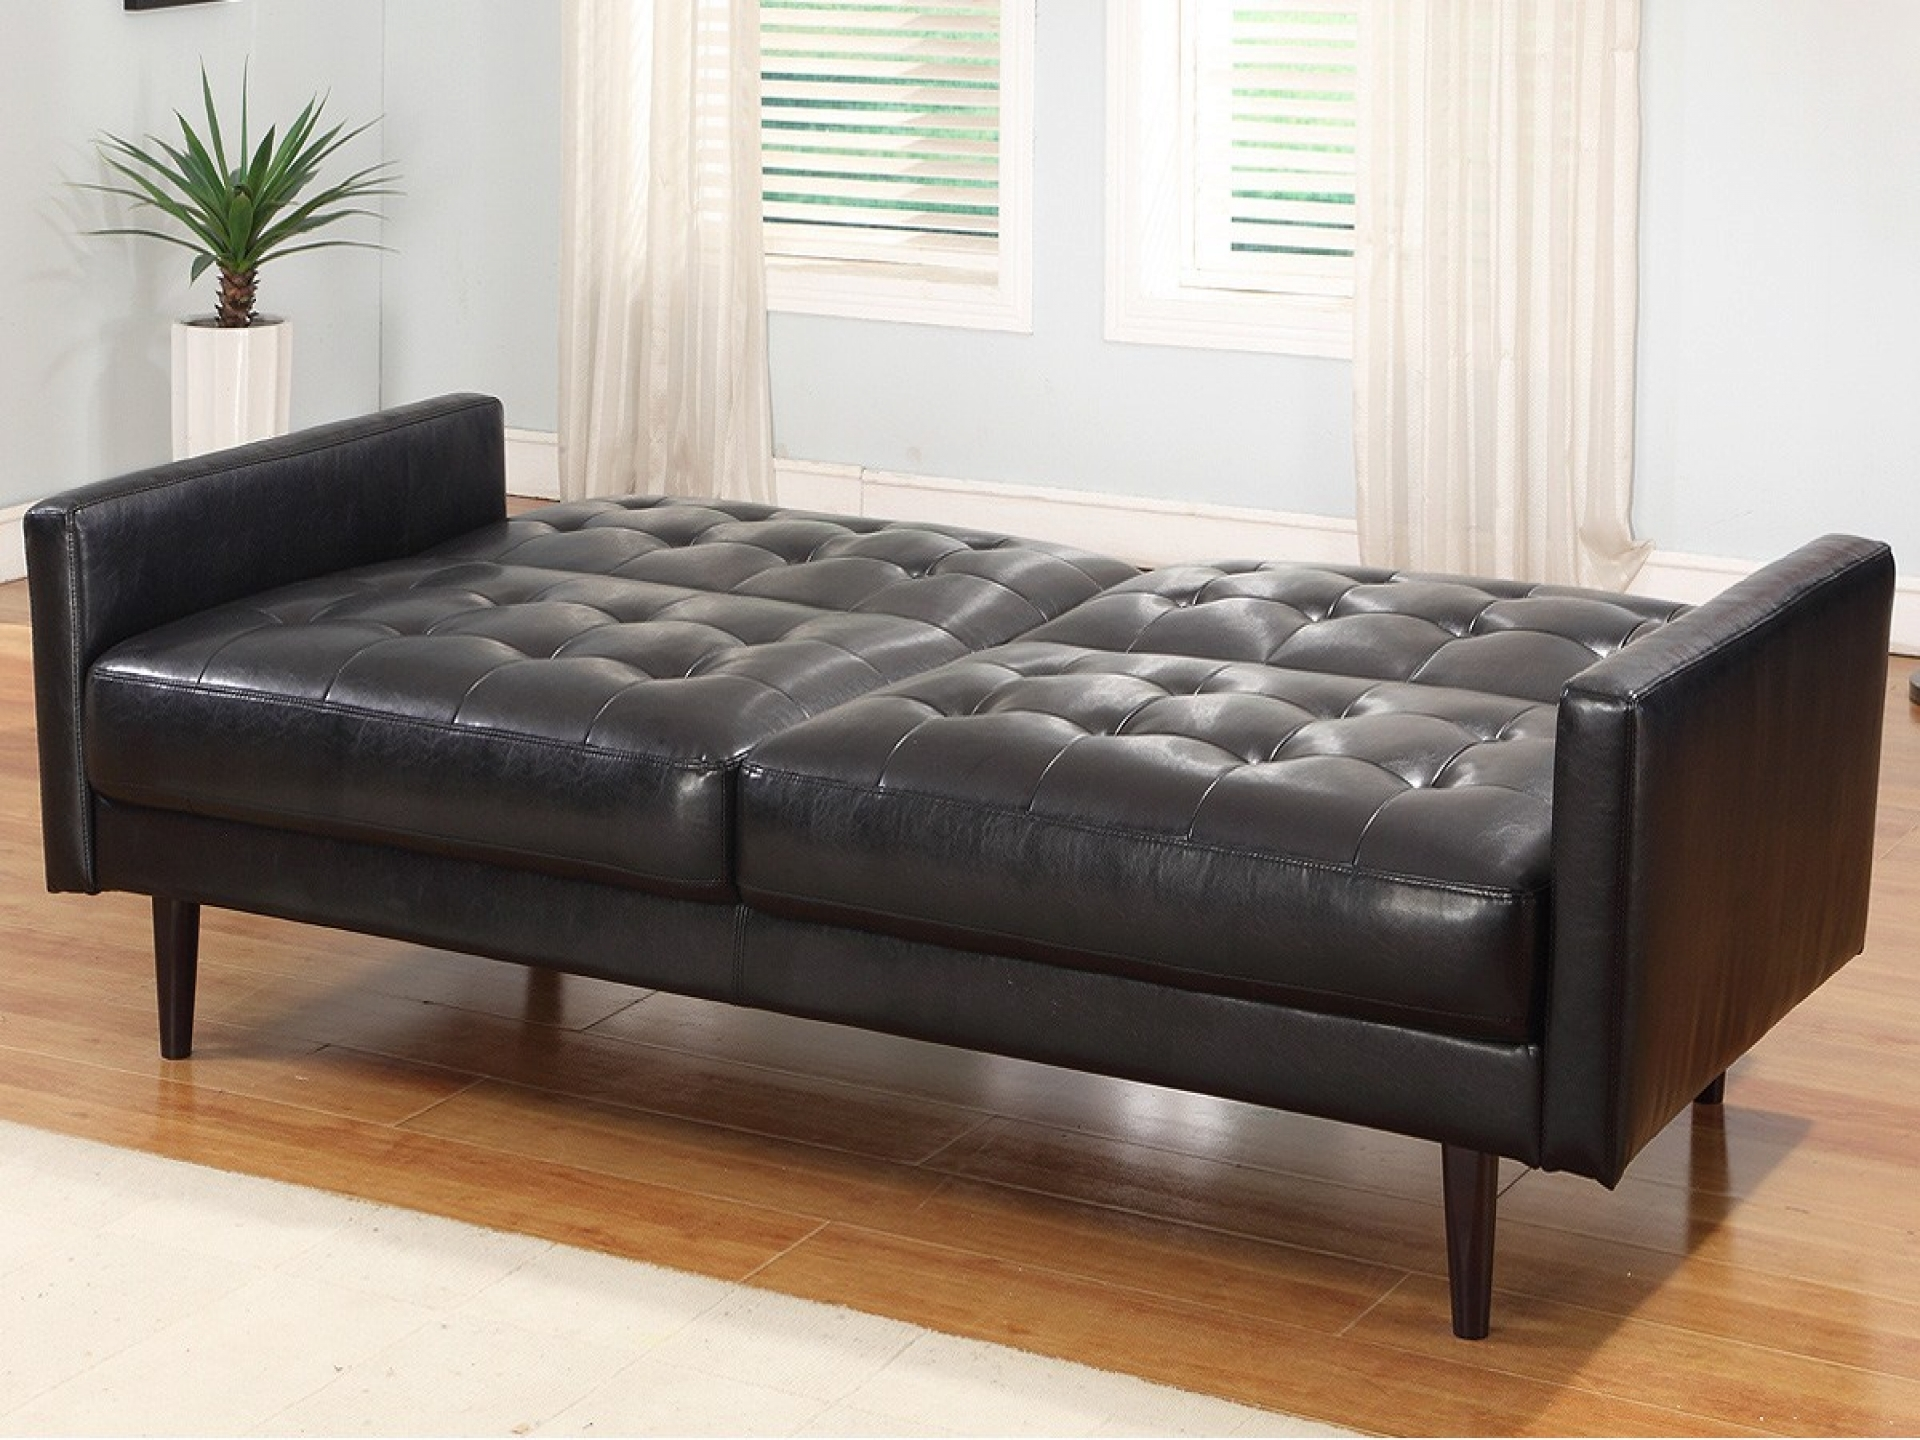 Sleeper Sofa Leather Modern Hereo Sofa With Regard To Cool Sleeper Sofas (#10 of 12)